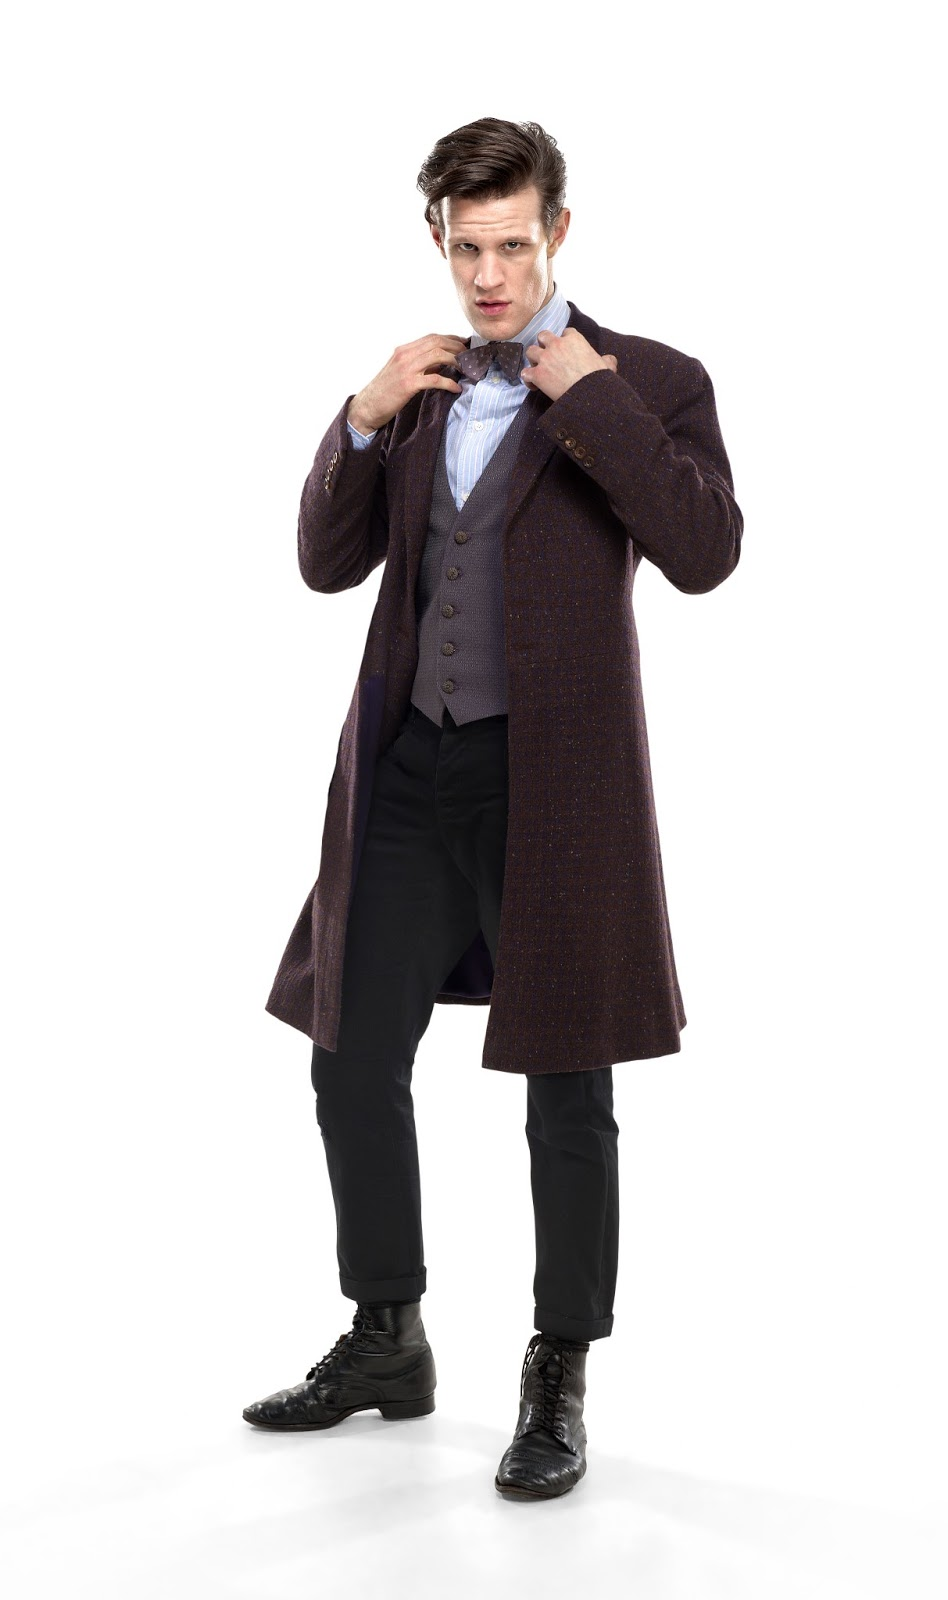 VALETH, John 11th-Doctor-Outfits-doctor-who-35669481-948-1600